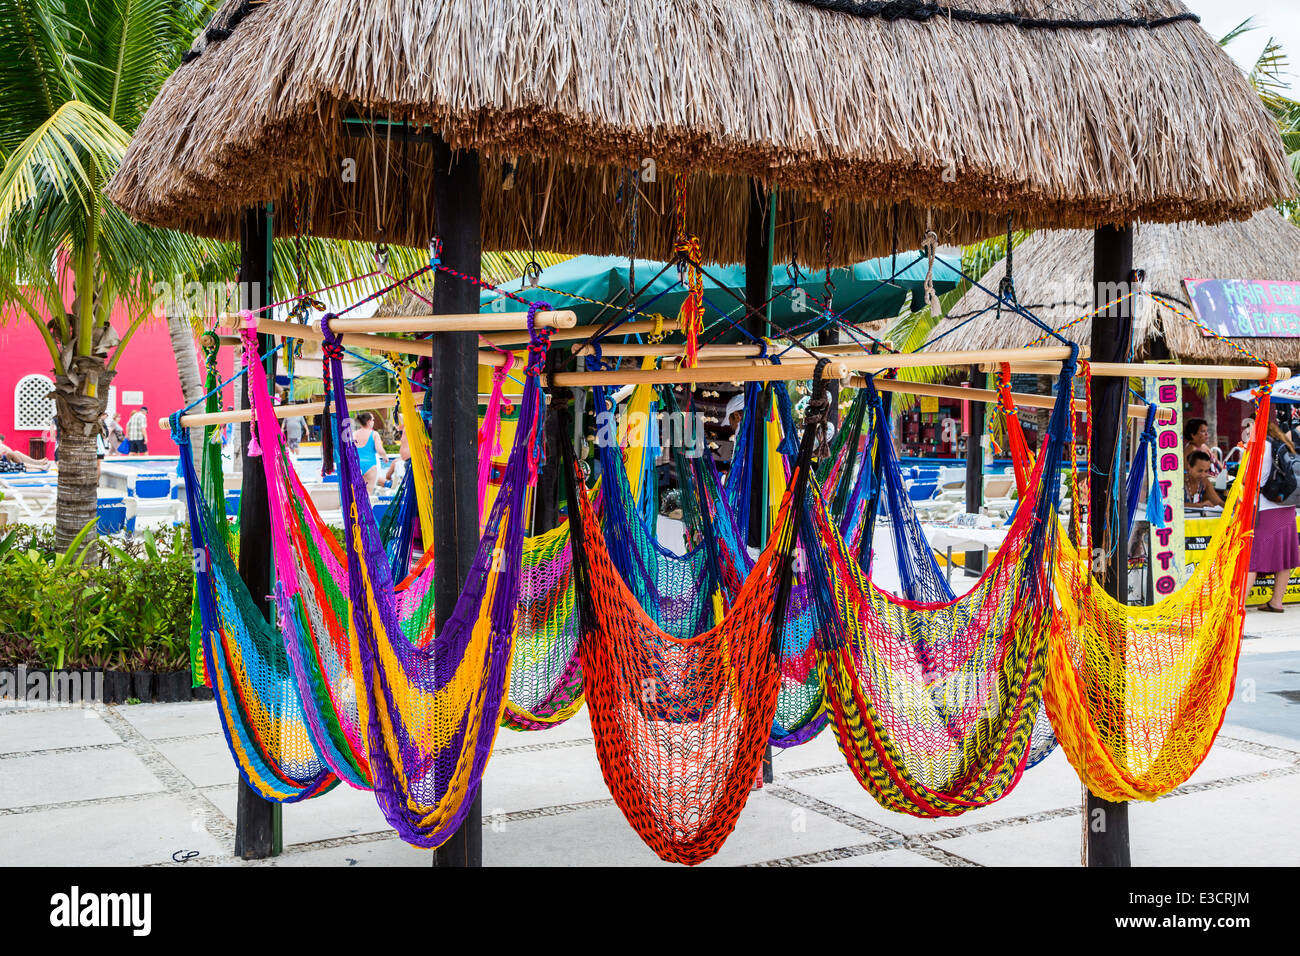 Hammocks for sale at the cruise ship terminal in Costa Maya, Mexico. - Stock Image